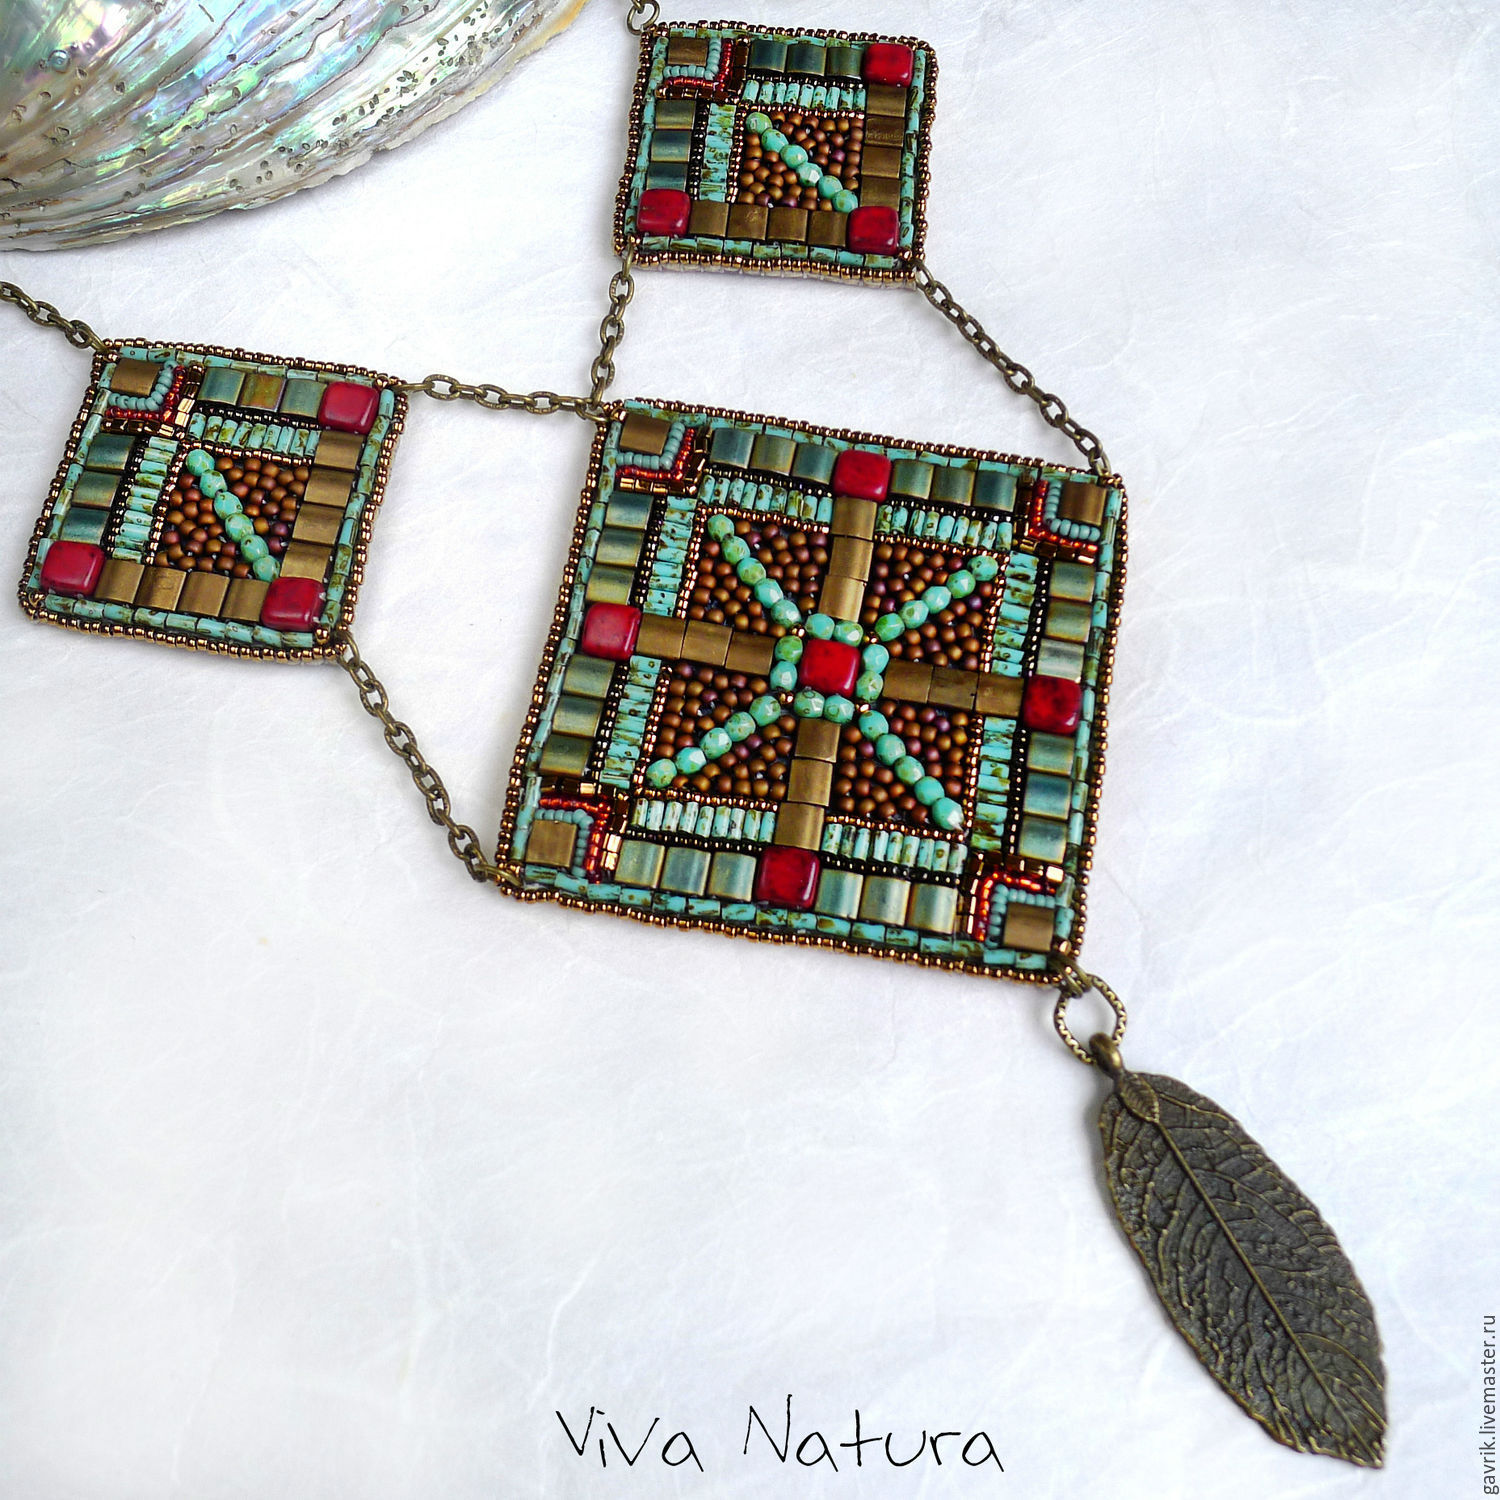 Statement necklace `Legends of Maya`. Handmade jewelry, costume jewelry. Ethnic style necklace, pendant. Seed beads embroidery.